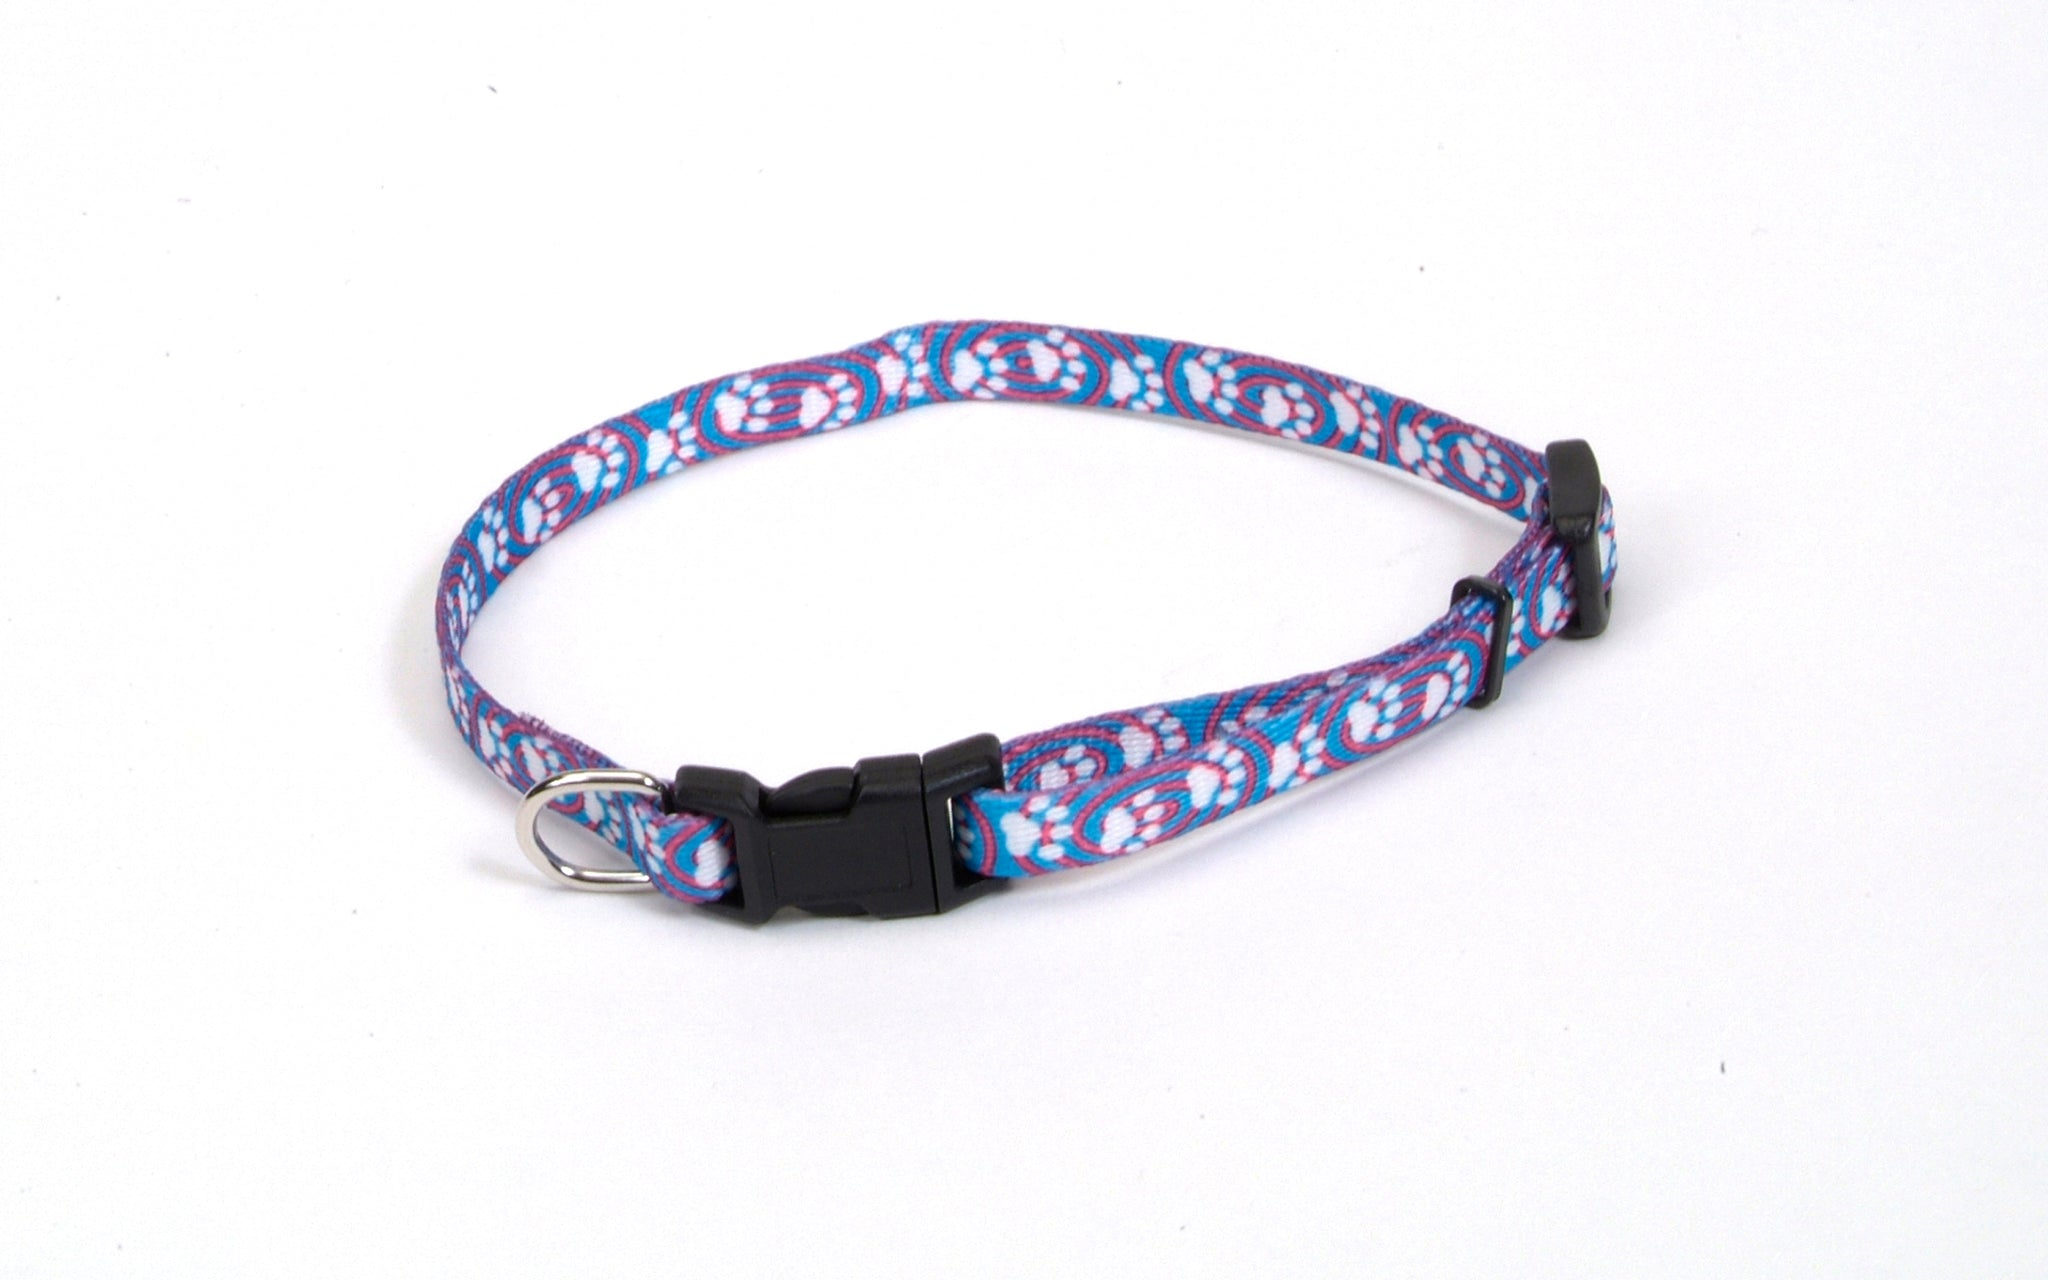 Li'l Pals Blue Paws Dog Collars